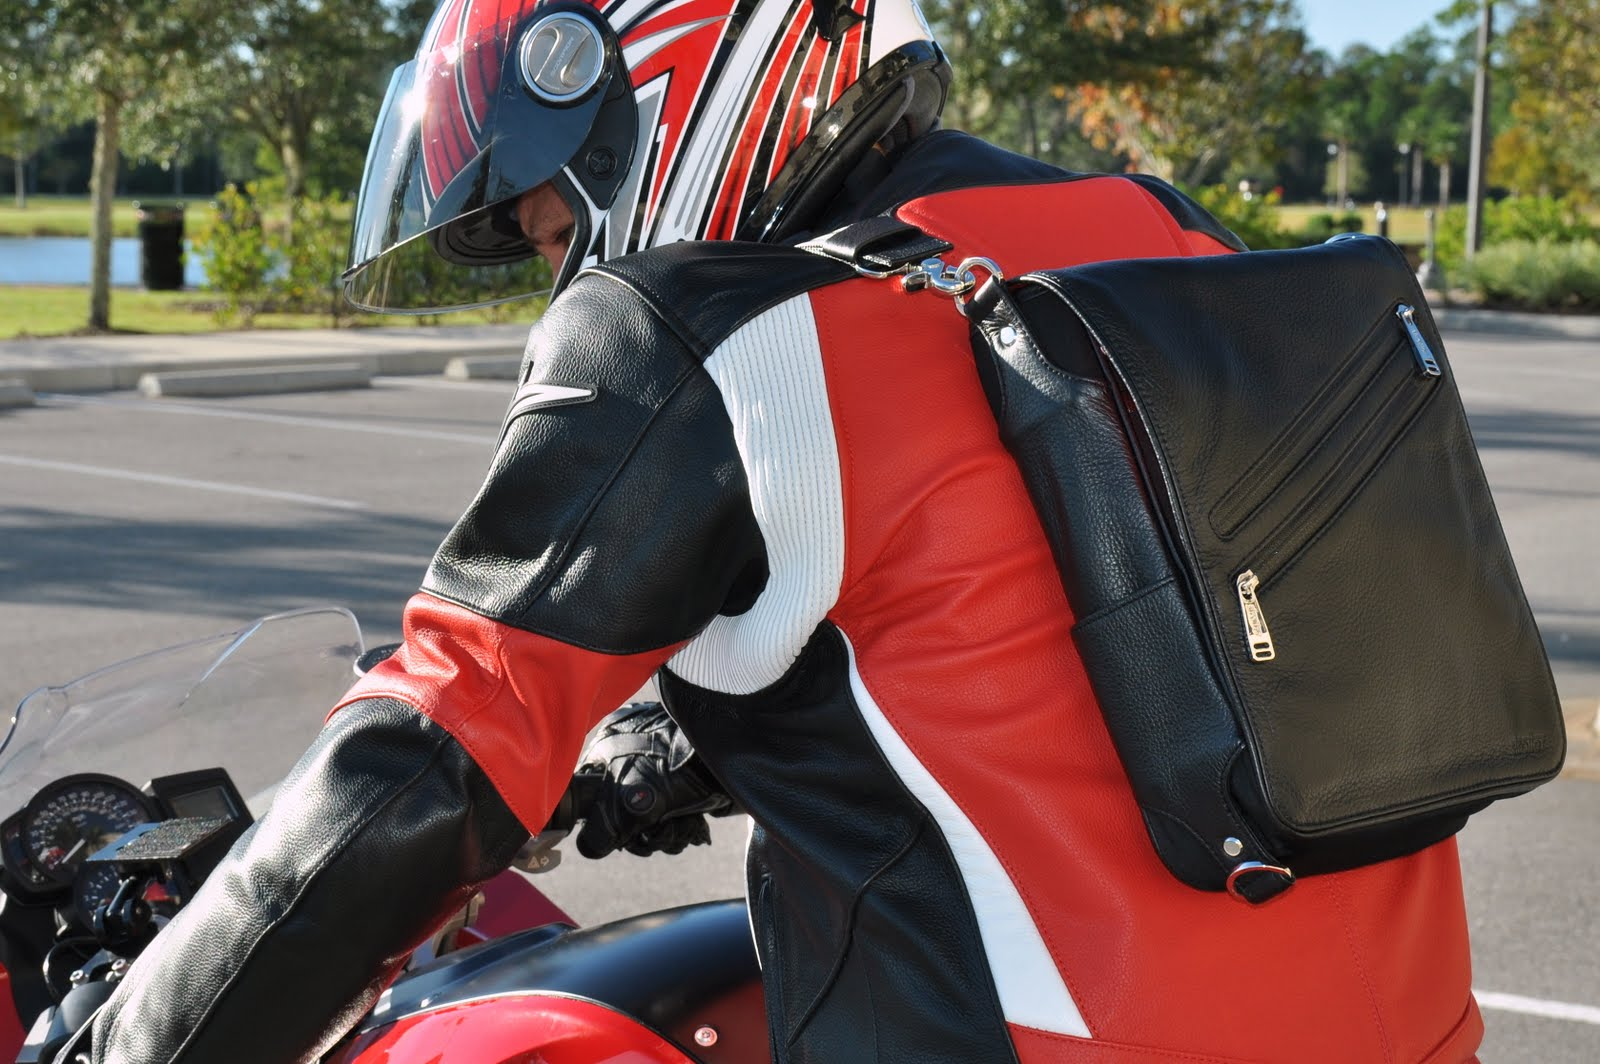 iPad messenger bag converts to backpack when riding a motorcycle